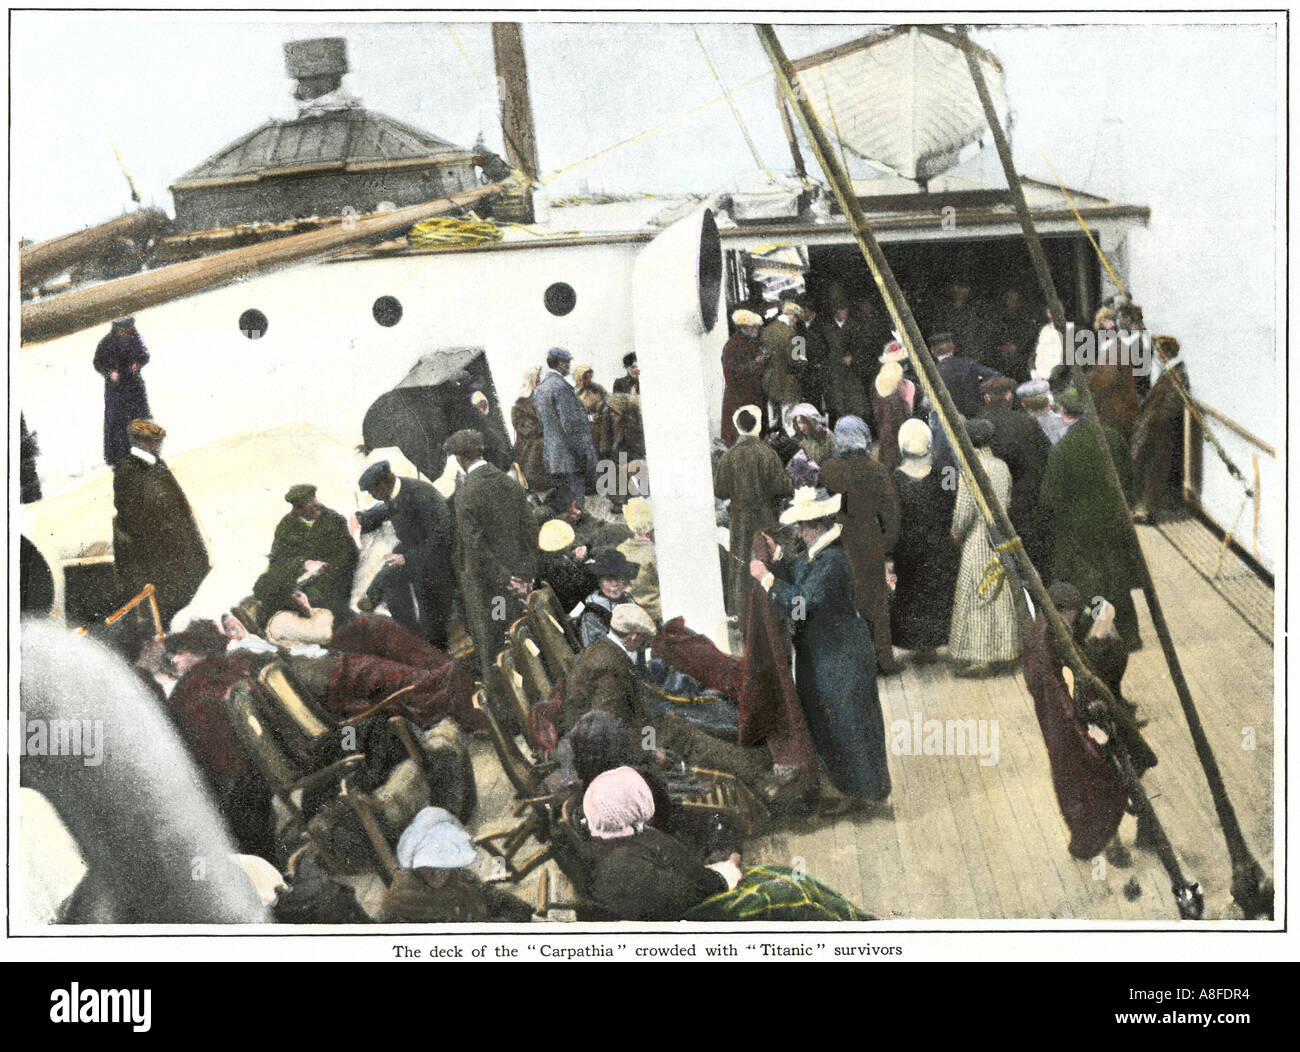 Titanic survivors on the deck of the steamer Carpathia 1912. Hand-colored halftone of a photograph - Stock Image